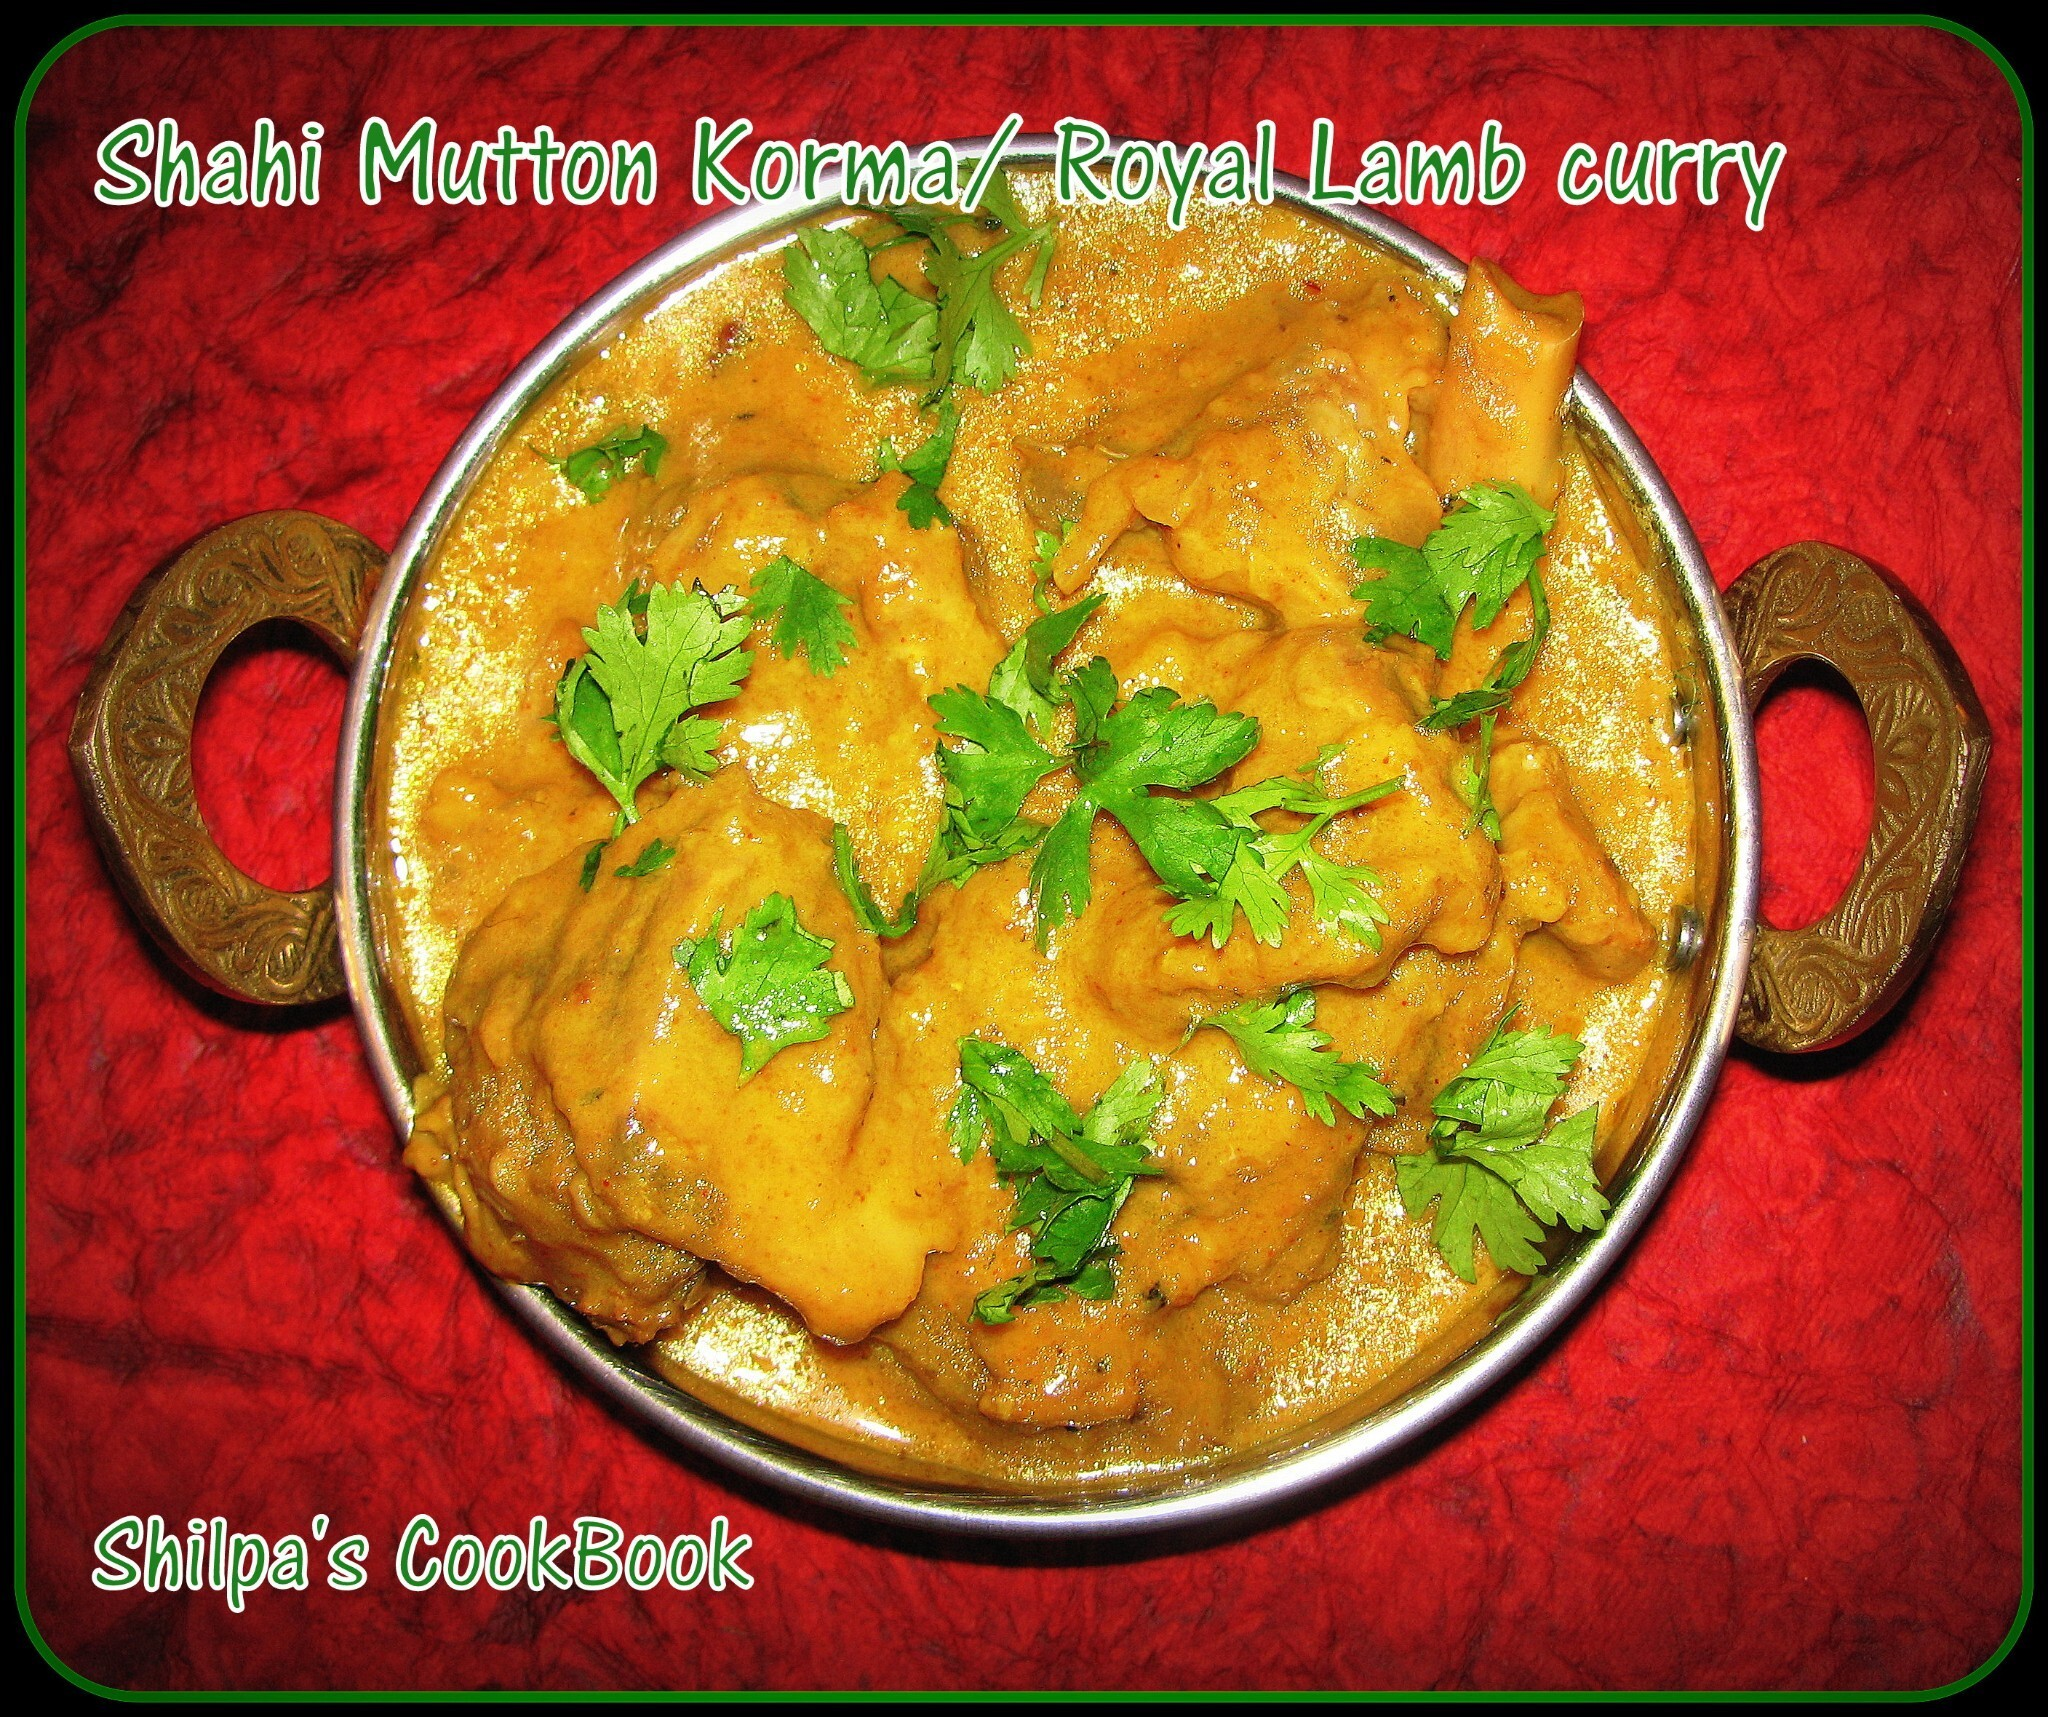 Shahi Mutton Korma or Royal Lamb